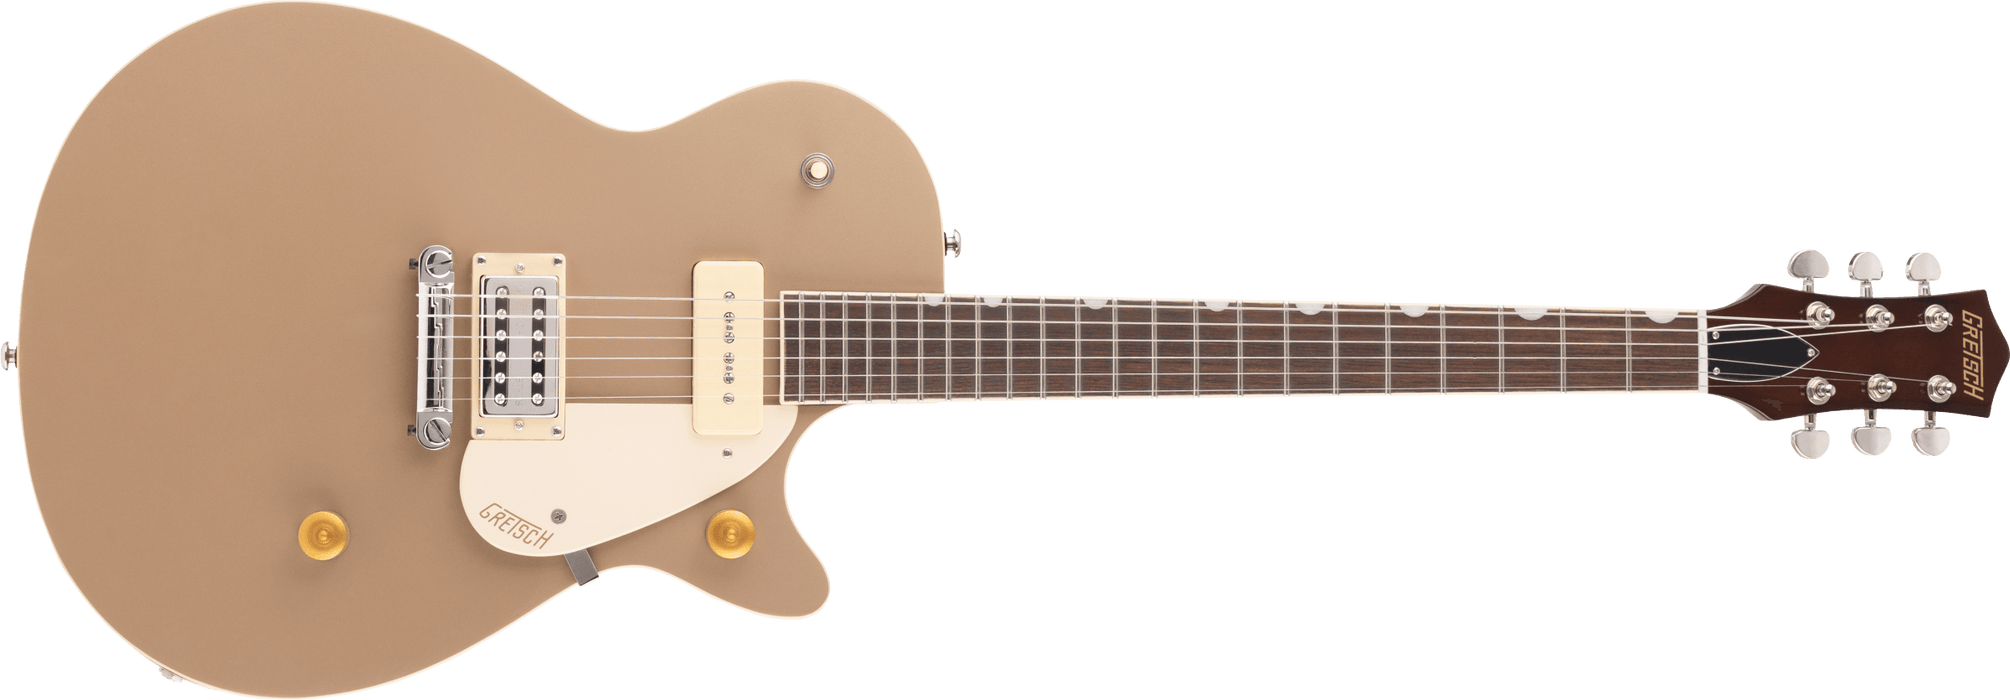 G2215-P90 Streamliner™ Junior Jet™ Club, Laurel Fingerboard, Sahara Metallic